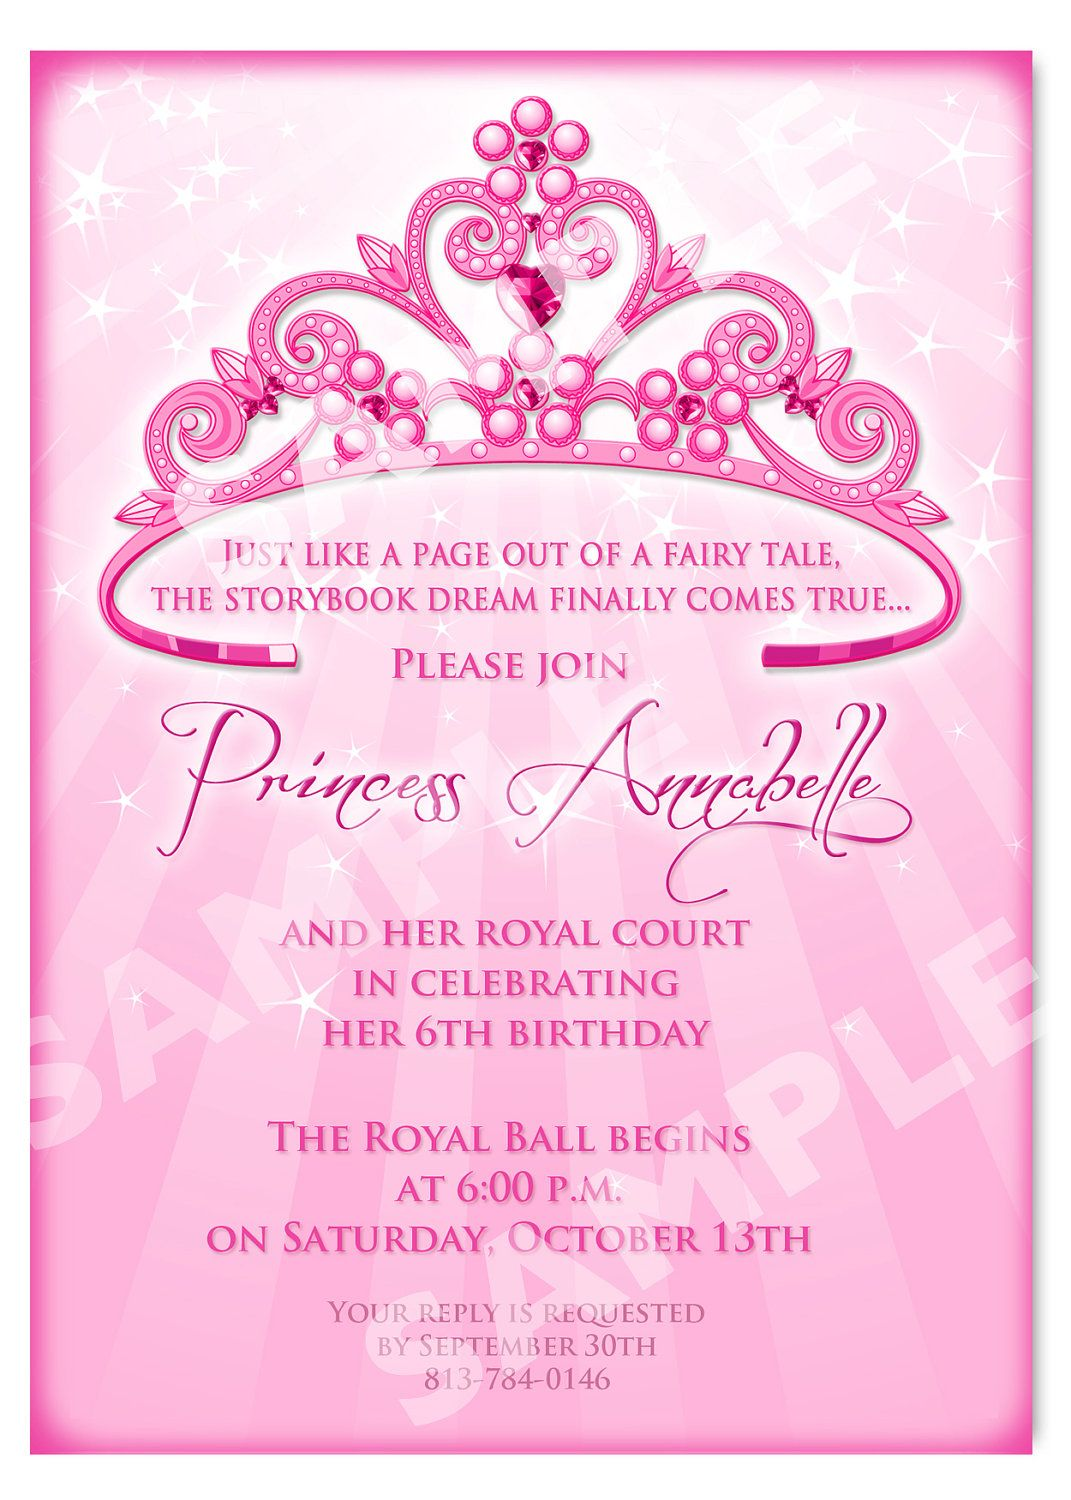 Printable Princess Invitation Cards Birthday Party Ideas - Party invitation template: princess party invitation template